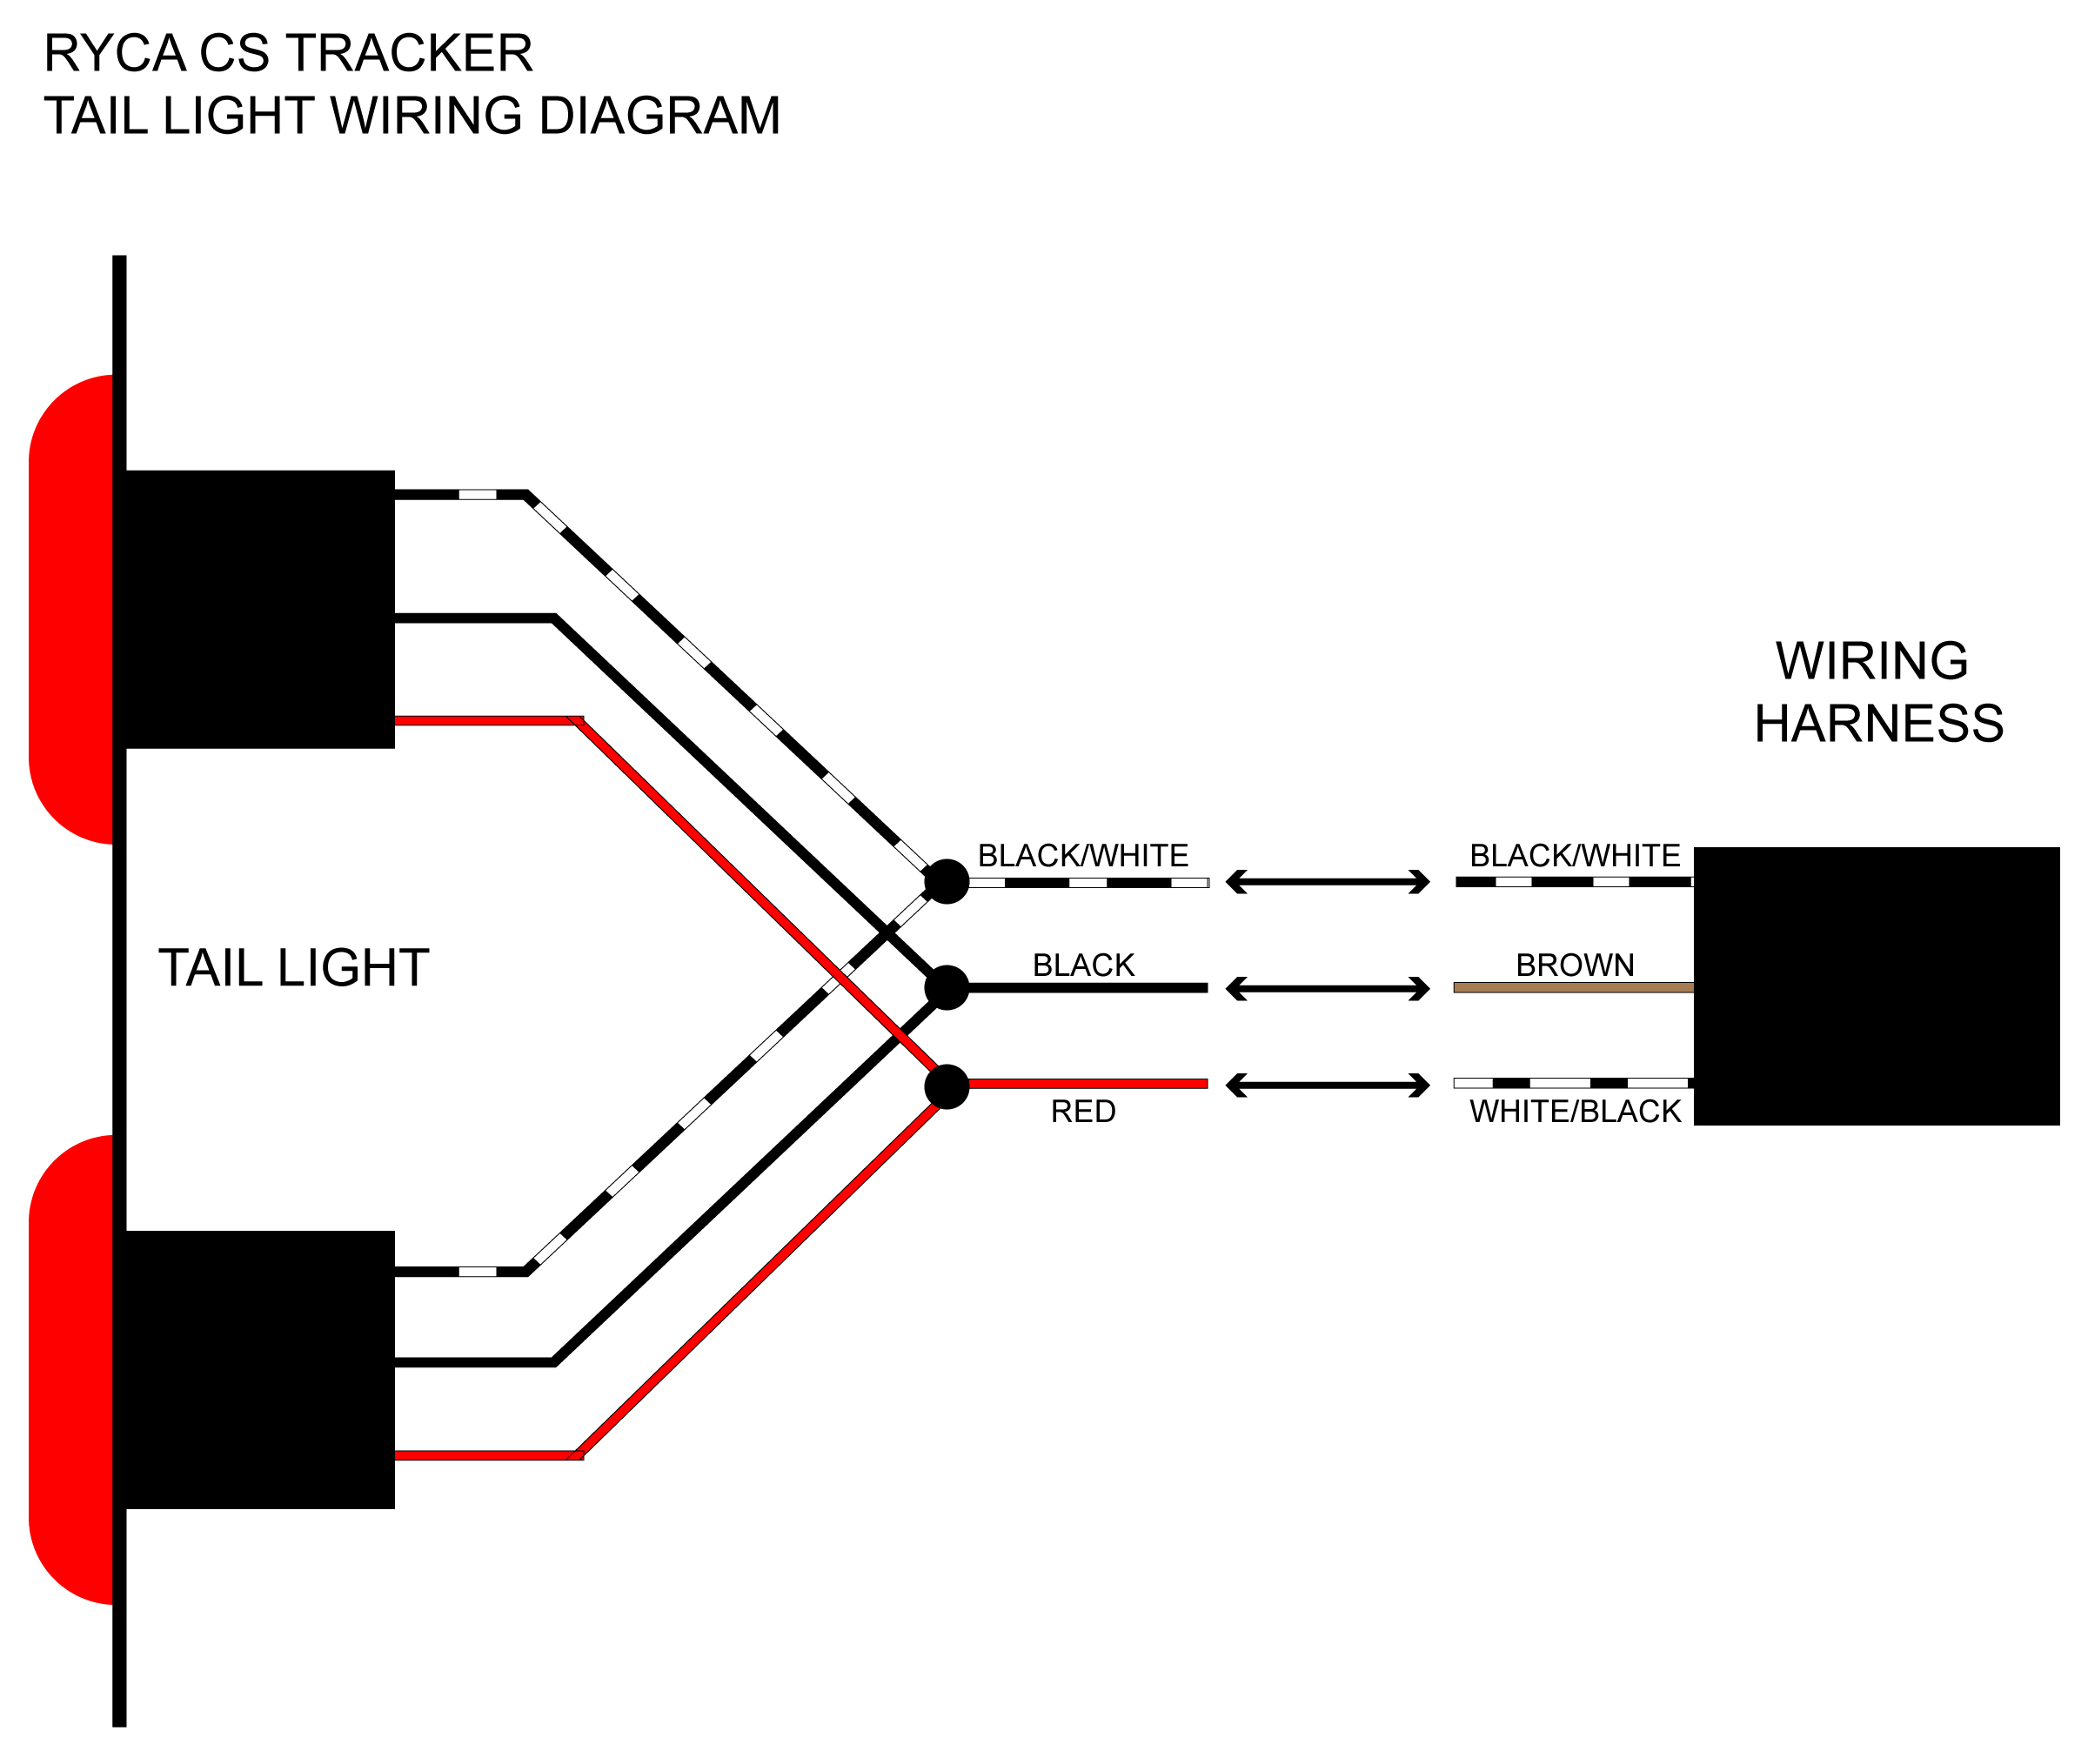 Led Wiring In Rv - Wiring Diagrams Hubs - Rv Trailer Lights Wiring Diagram